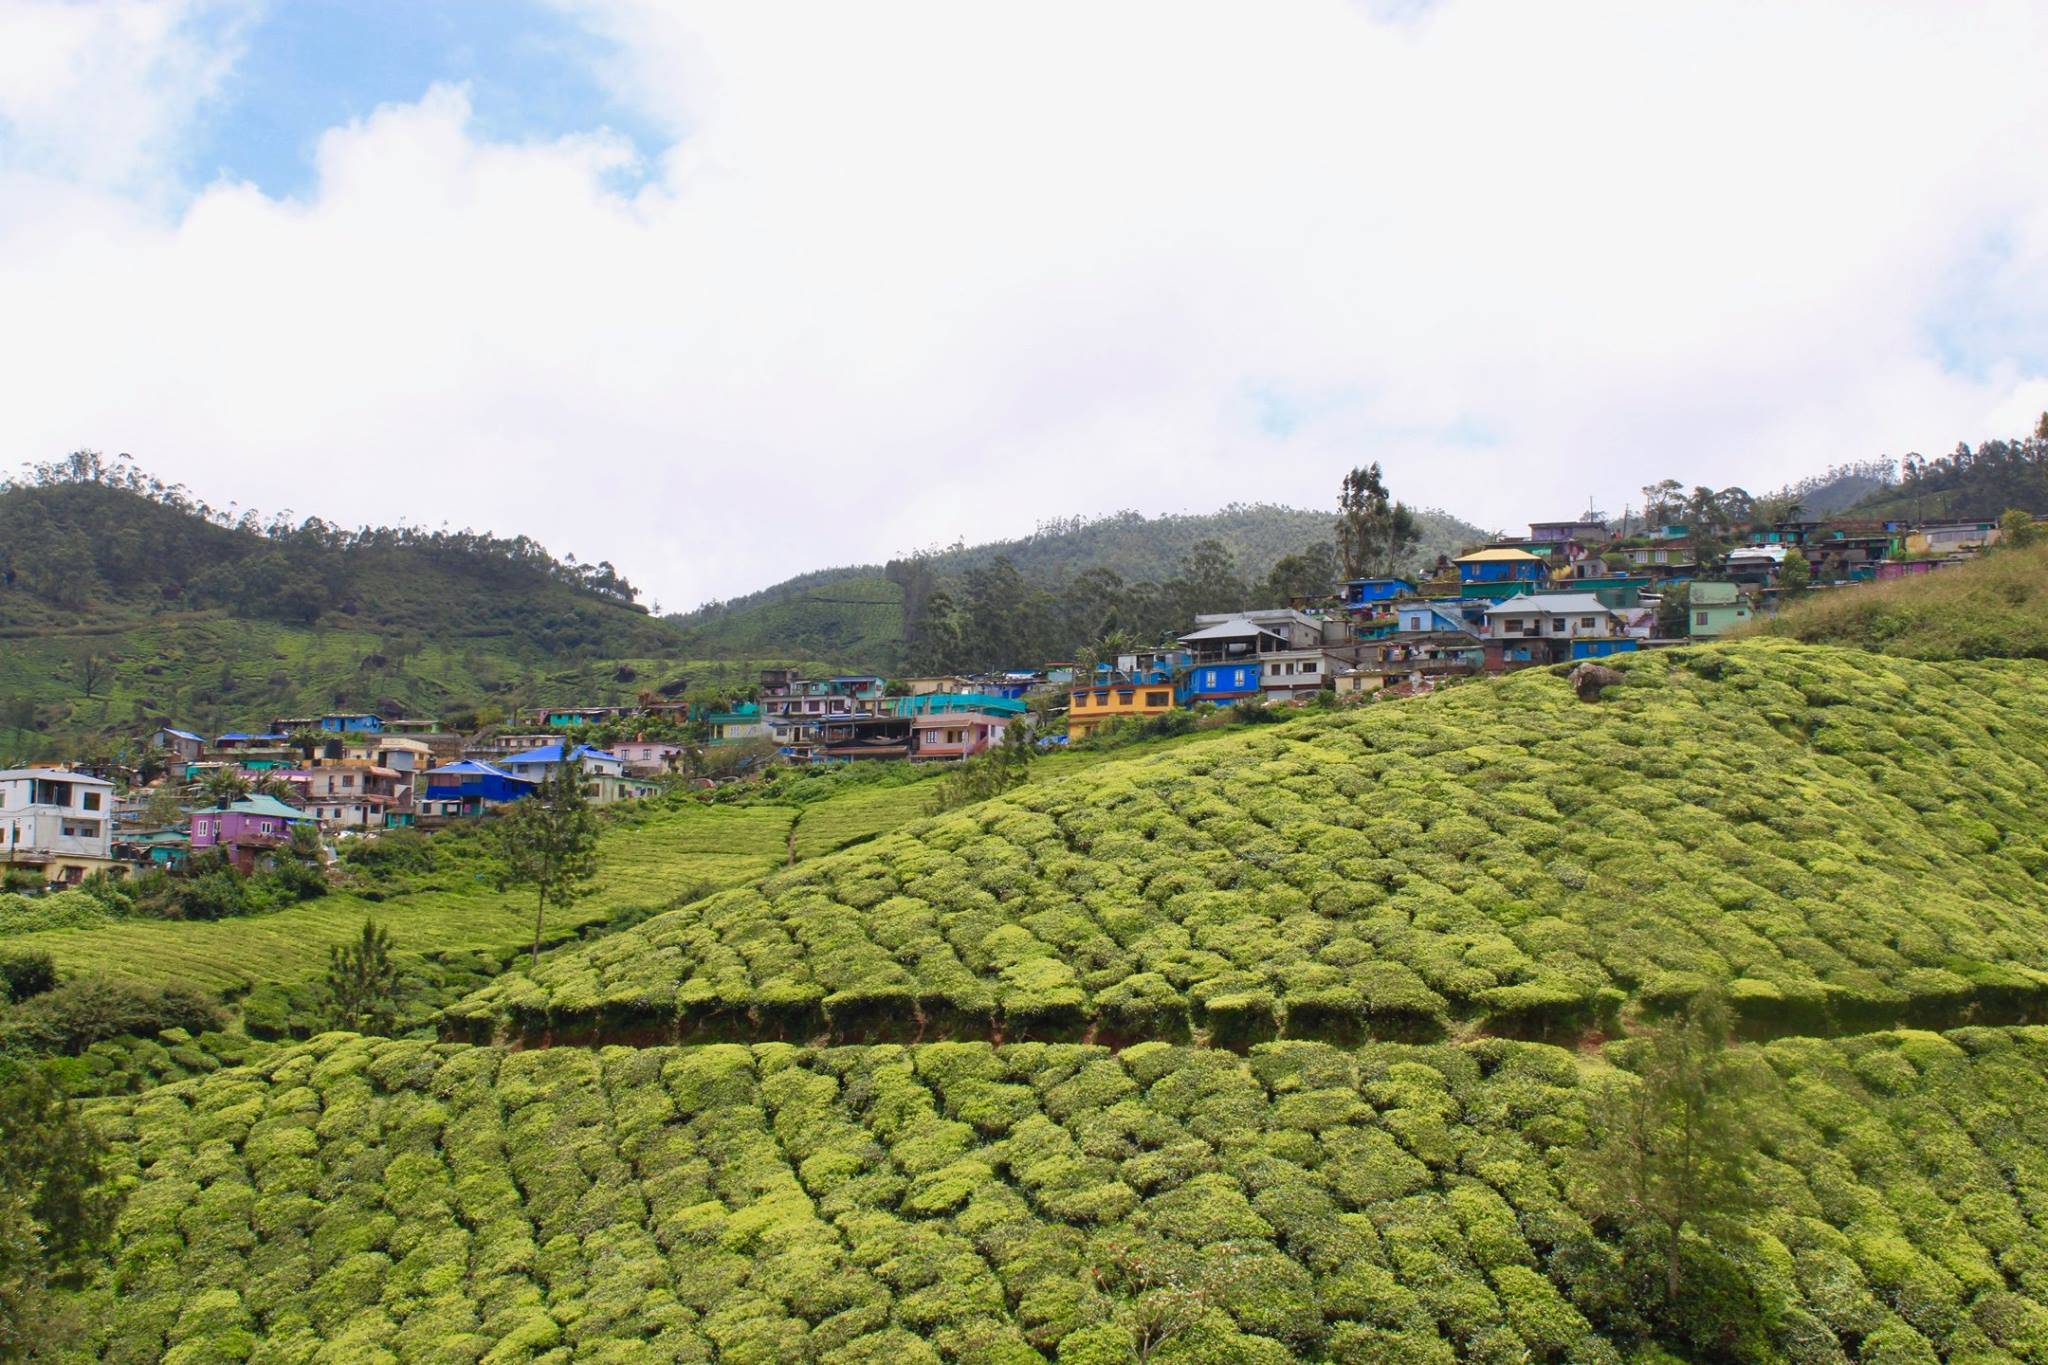 Photo 3: Plantations de thé à Munnar